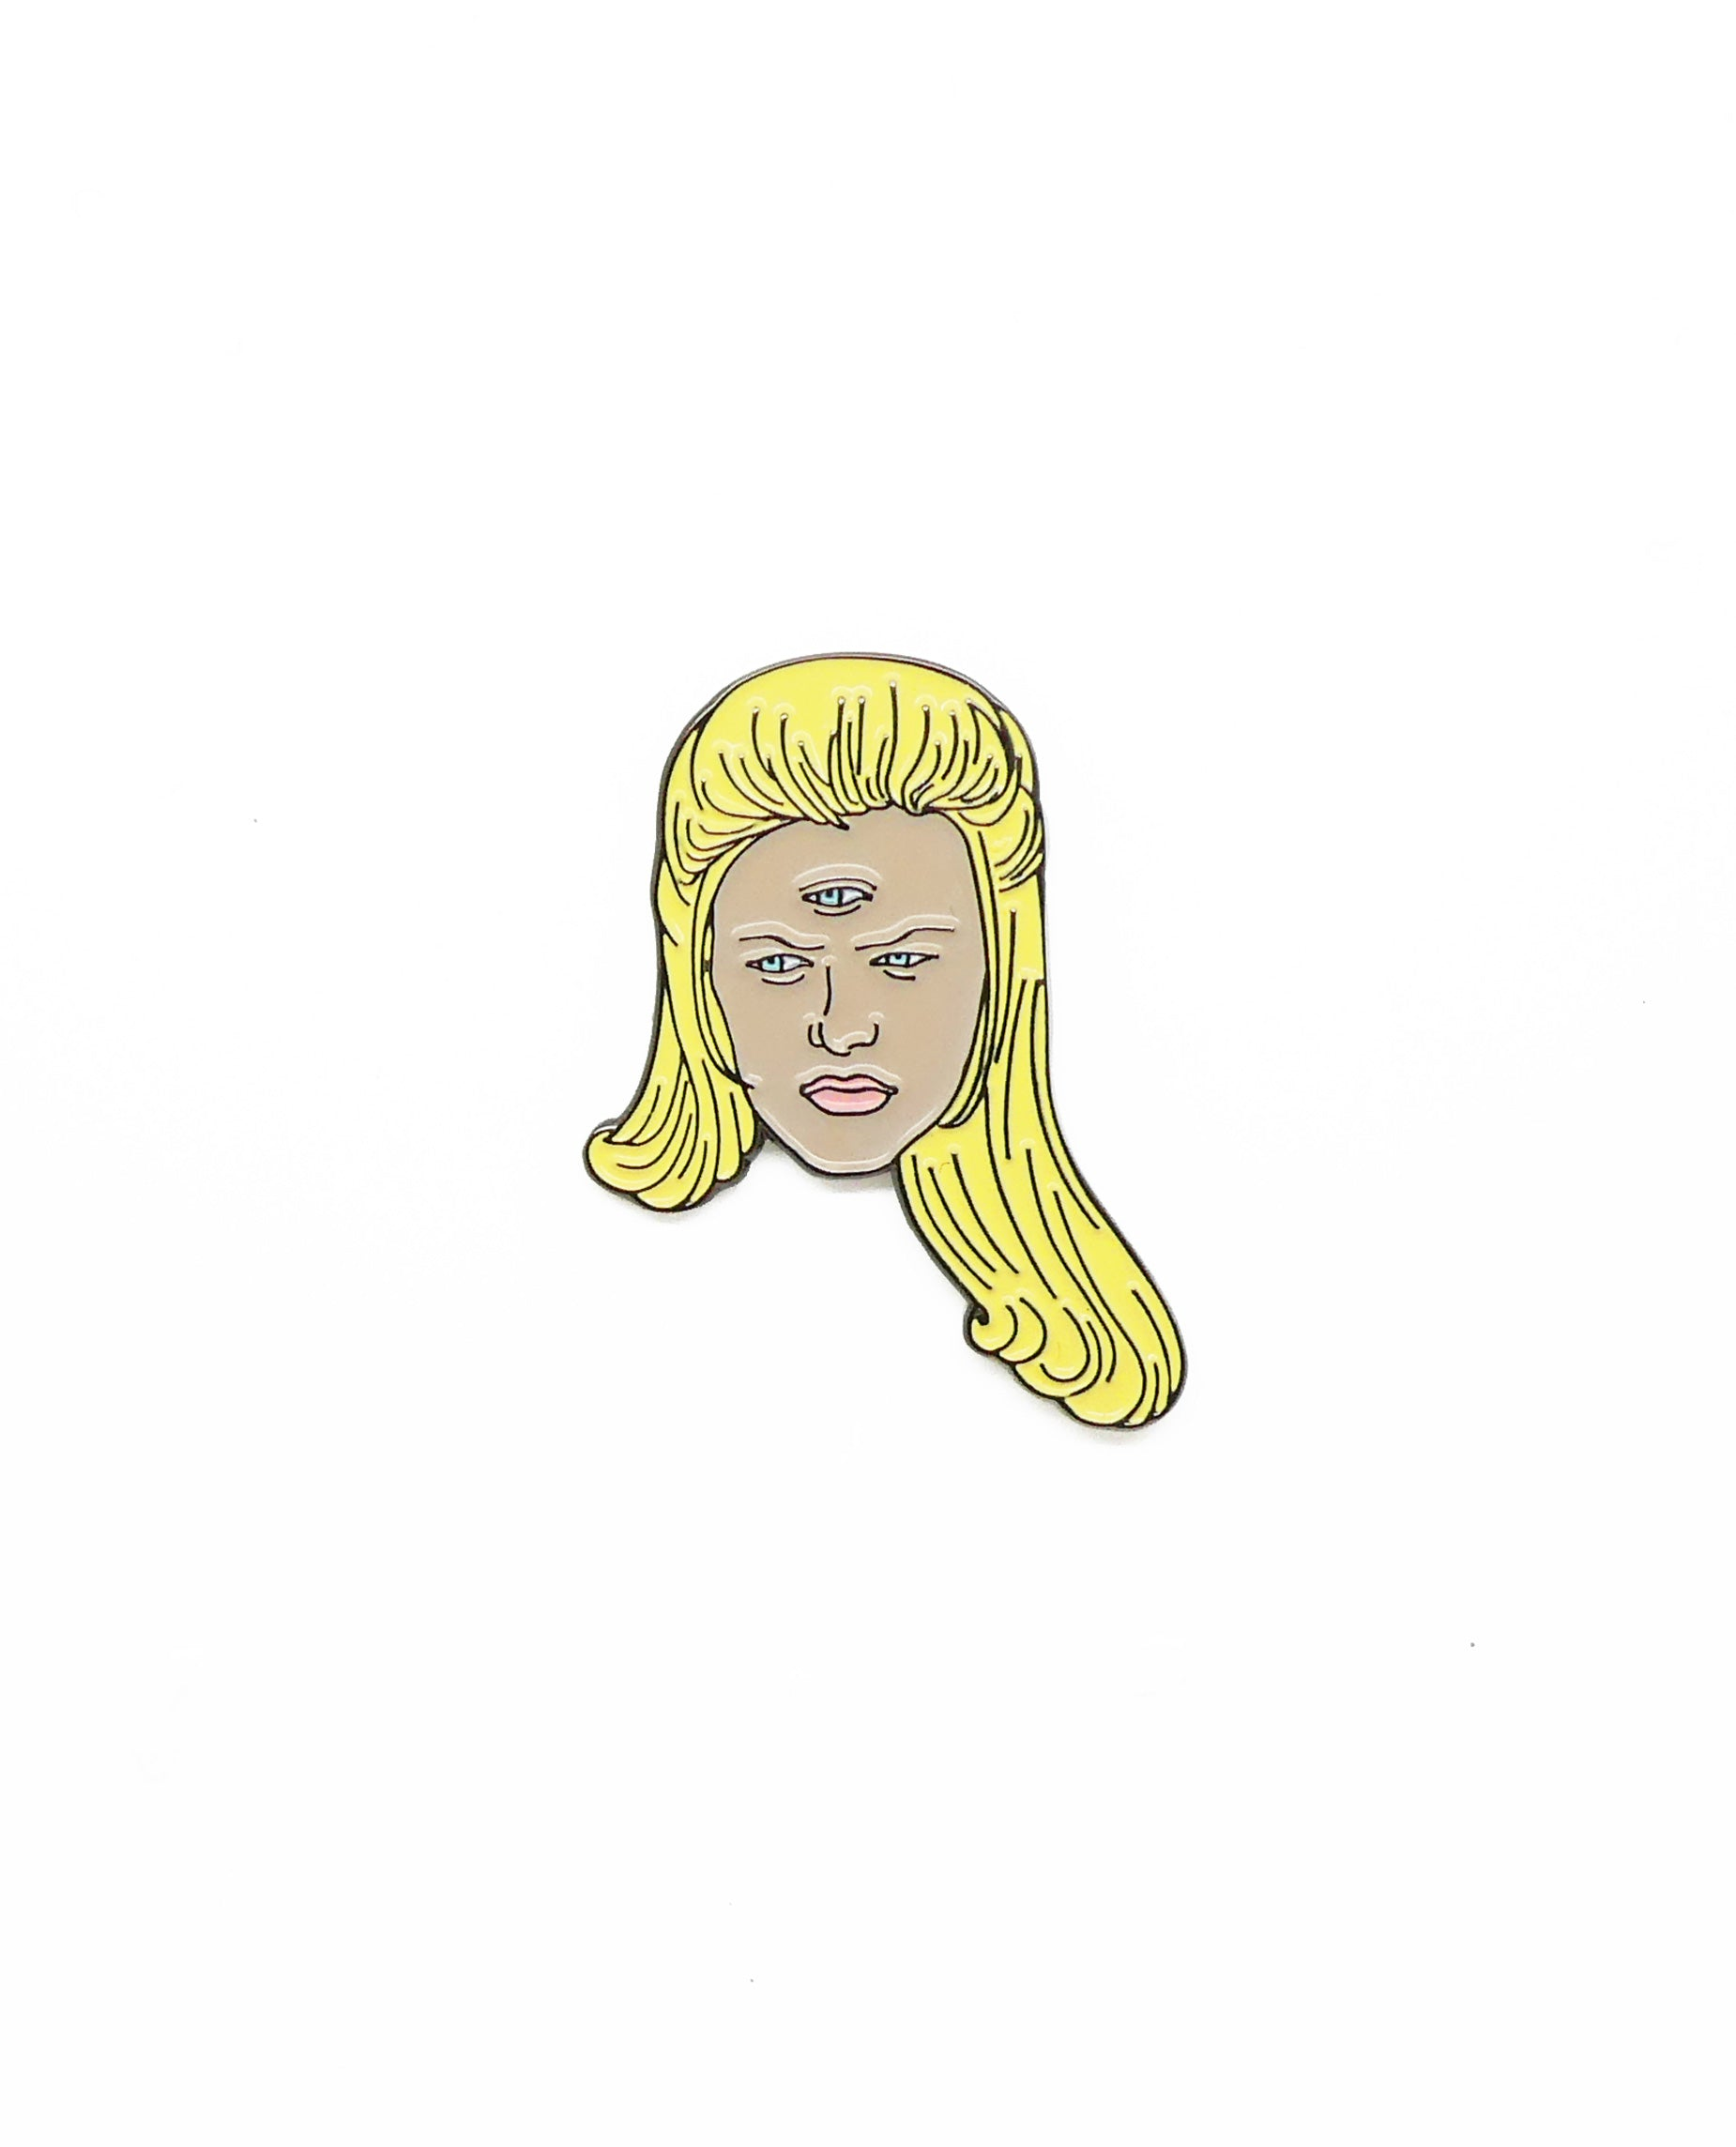 Cher from Clueless with 3rd Eye Pin Brooch